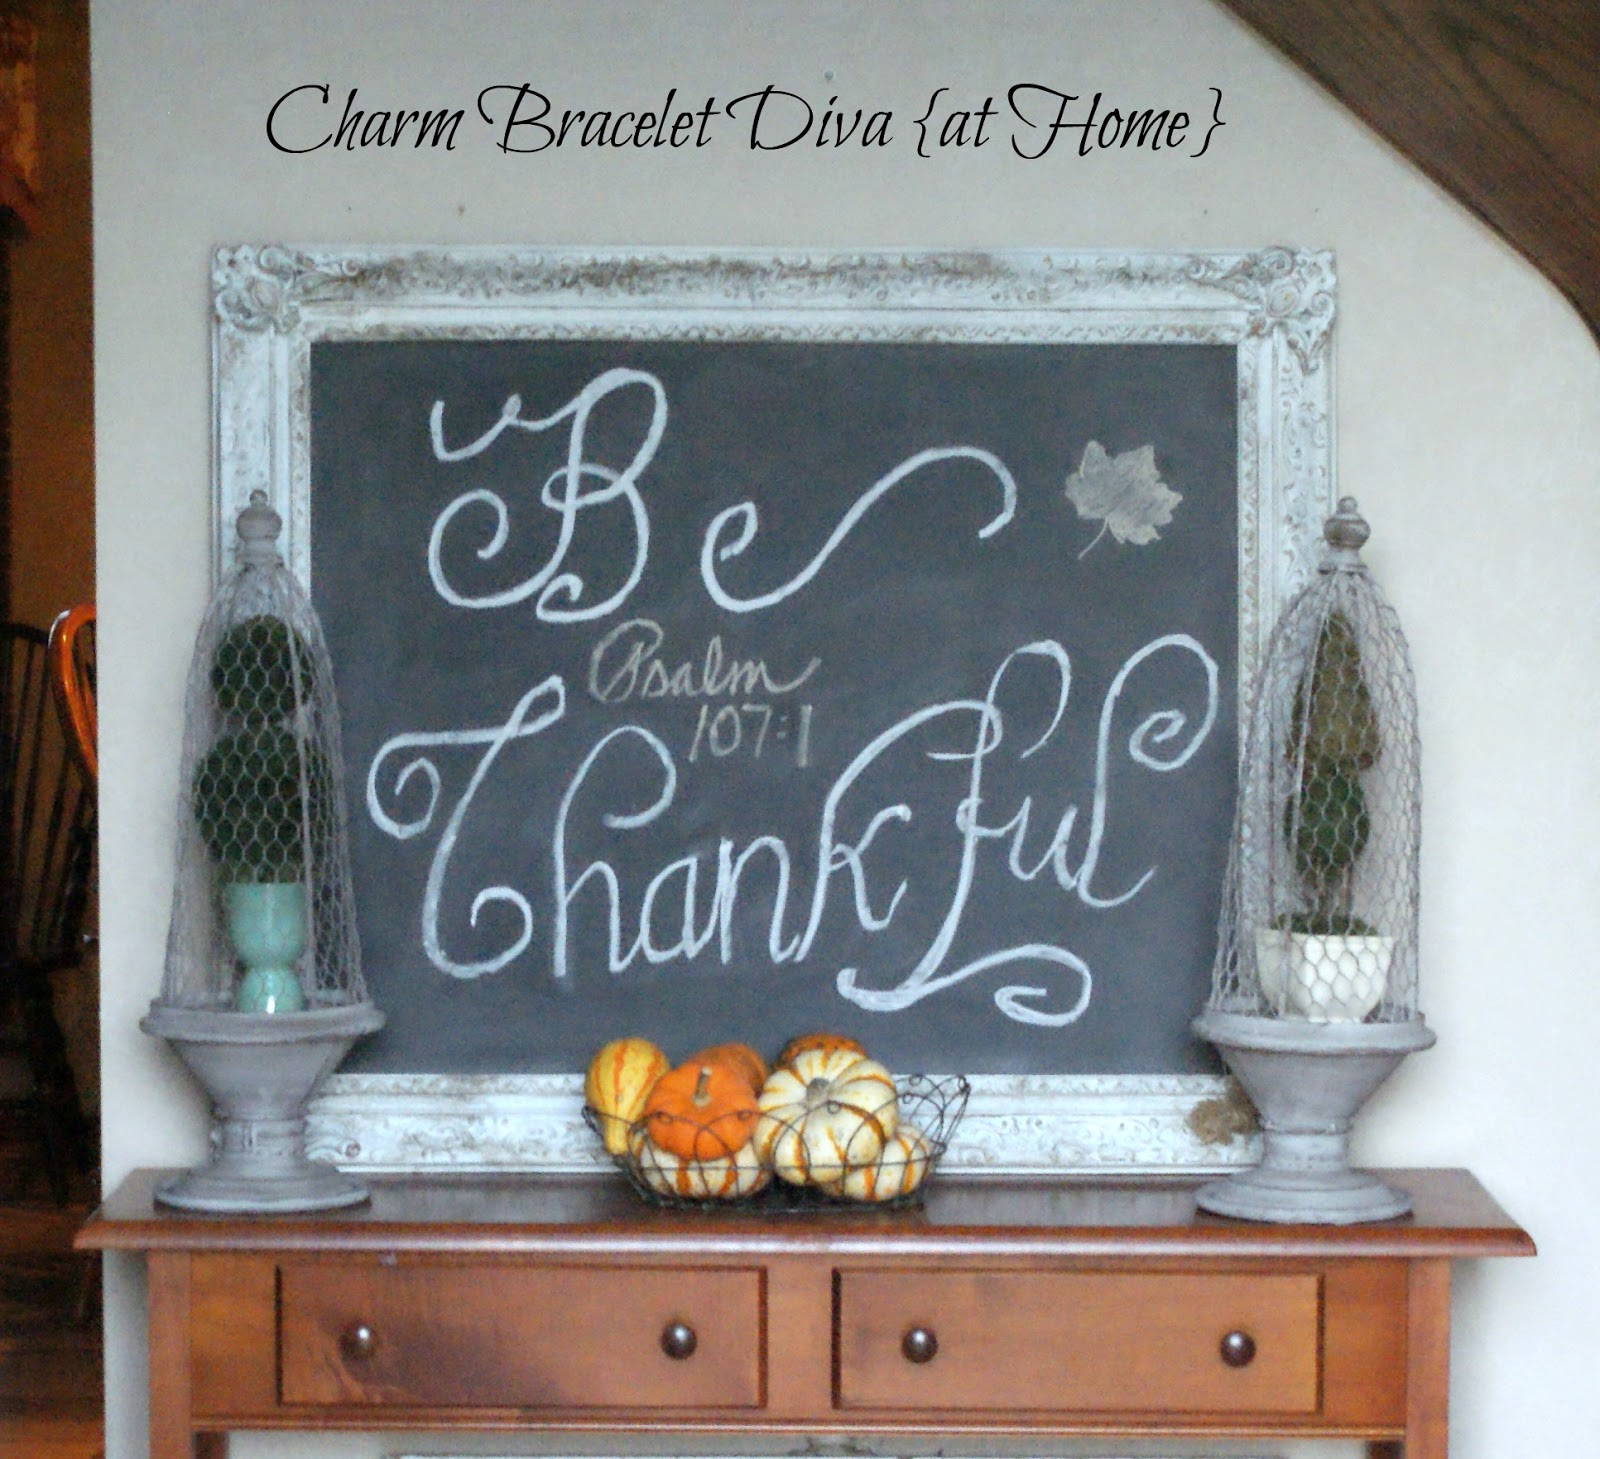 November Chalkboard Calendar Ideas : Our hopeful home some thanksgiving chalkboard ideas